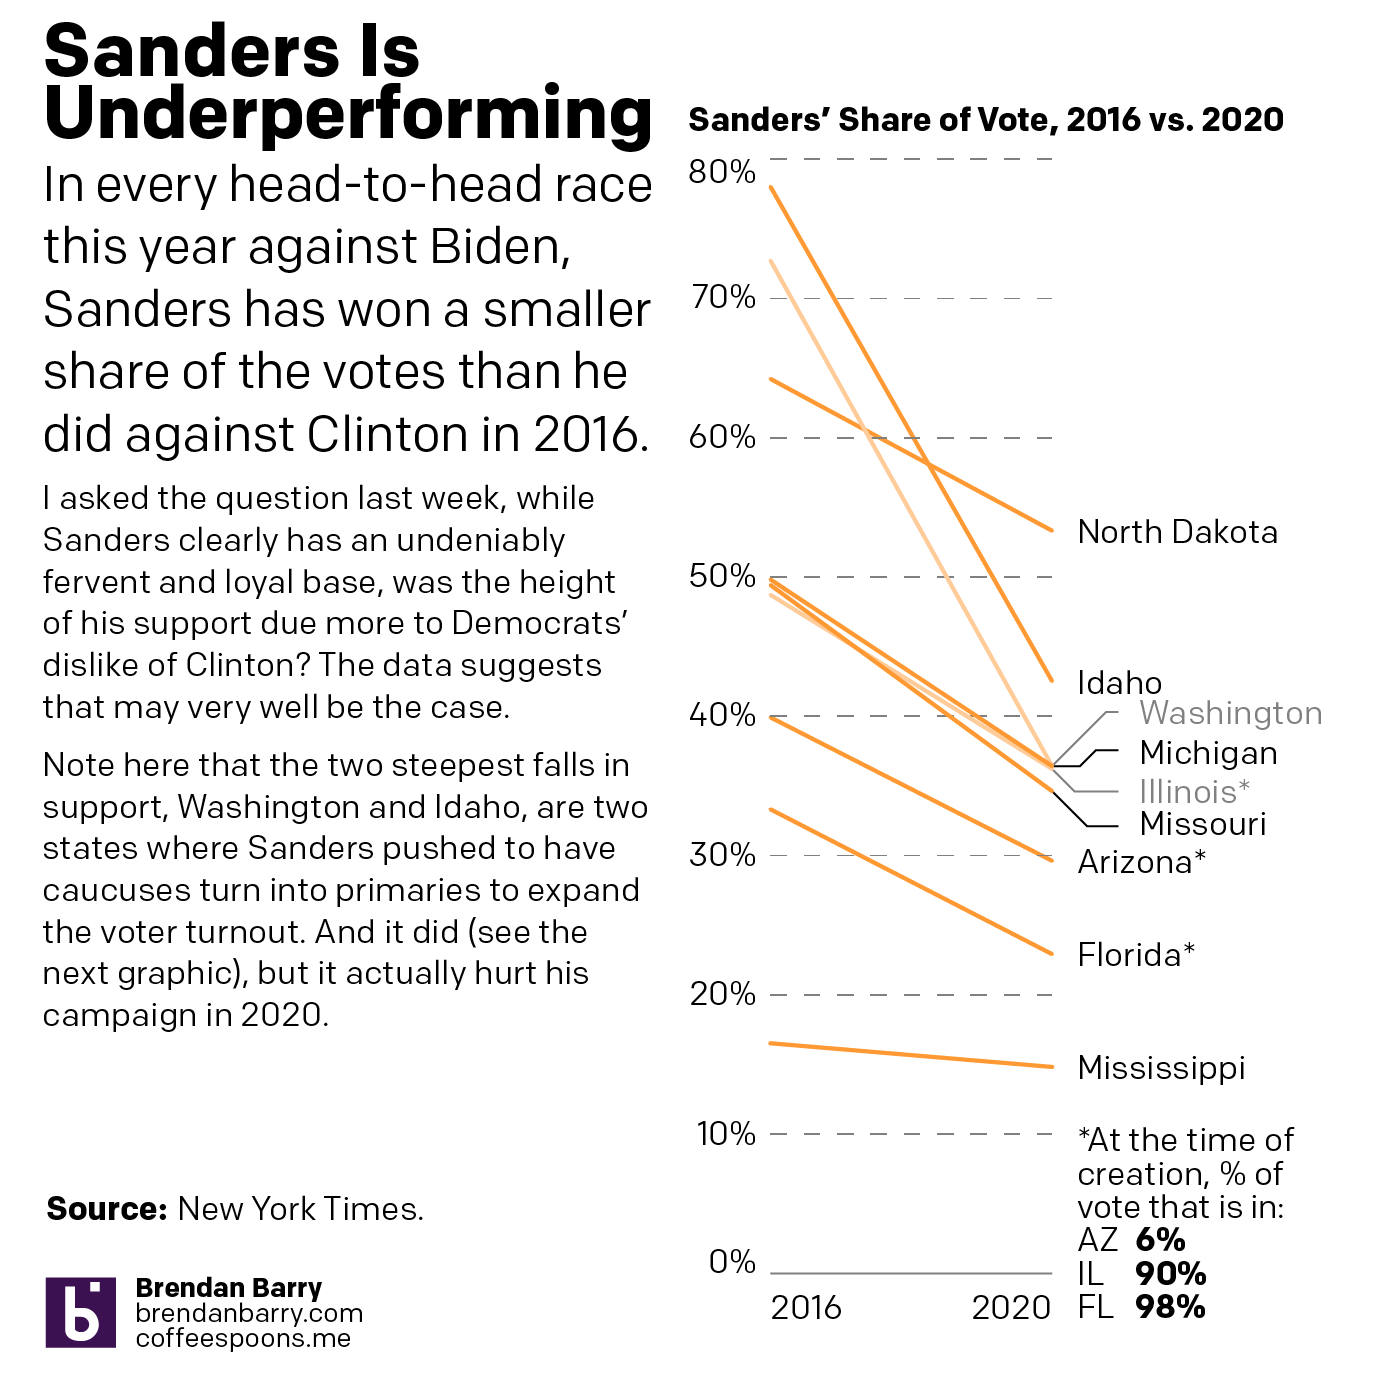 Sanders underperformed in every head-to-head match up this year relative to his numbers against Clinton in 2016